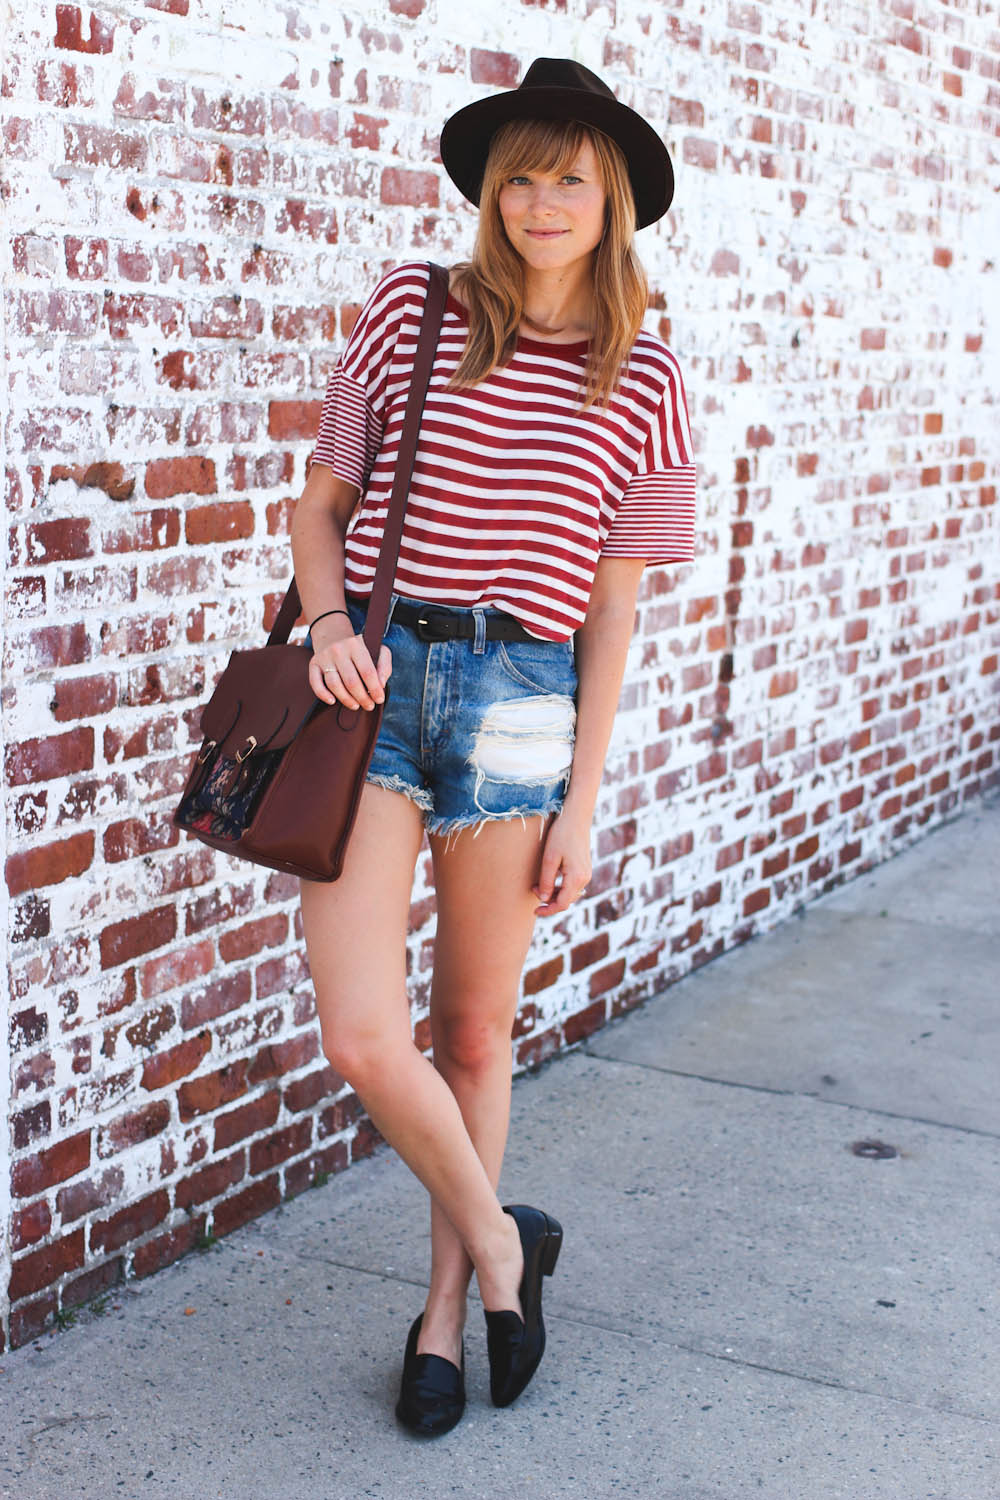 nyc fashion blogger, nyc fashion blog, vintage fashion blogger, distressed vintage denim, charlotte russe striped tee